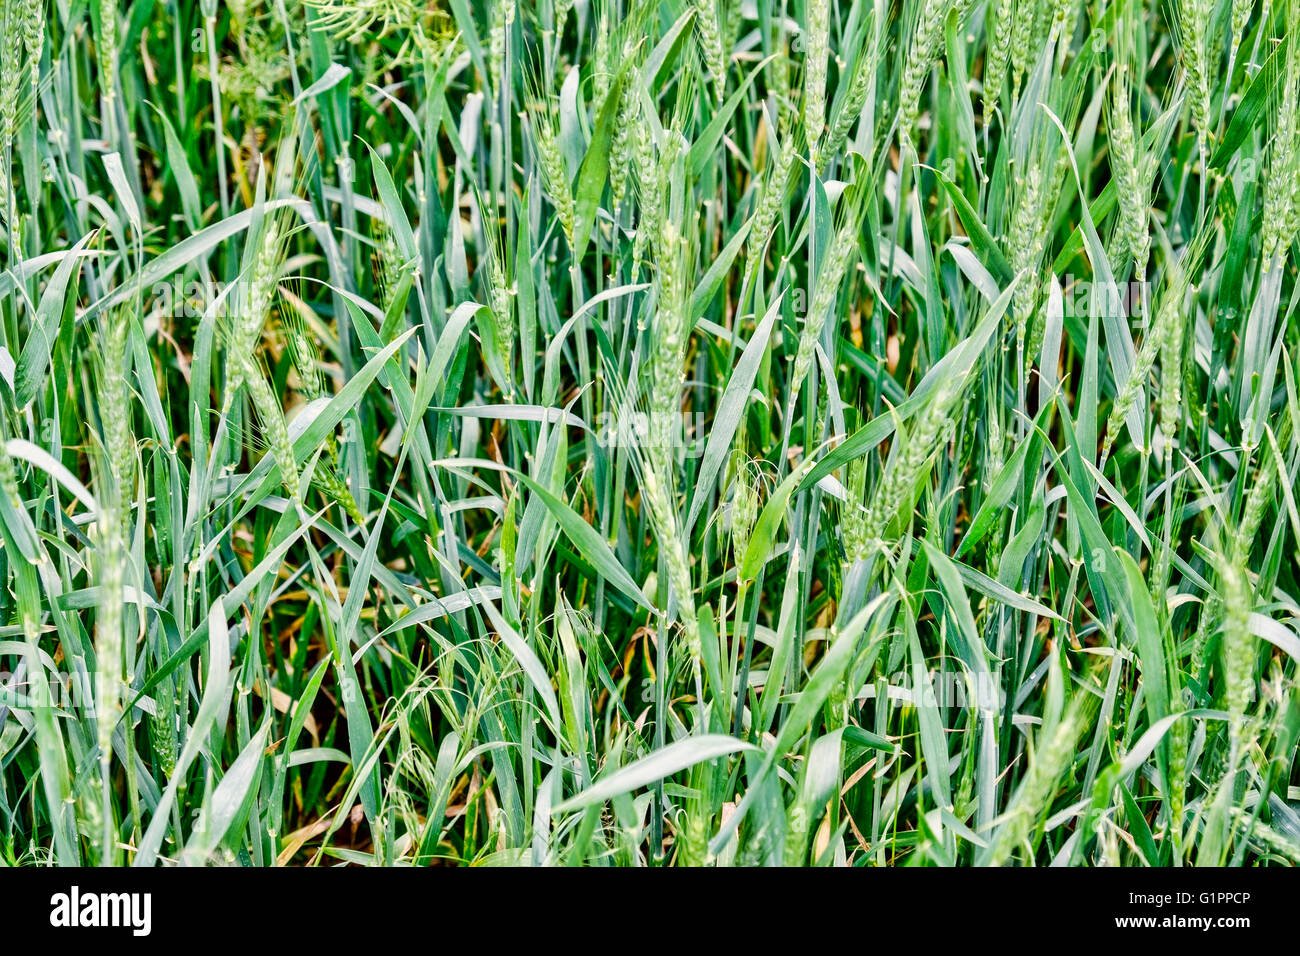 A closeup of a green wheatfield with the grain filling the heads. Closeup. - Stock Image